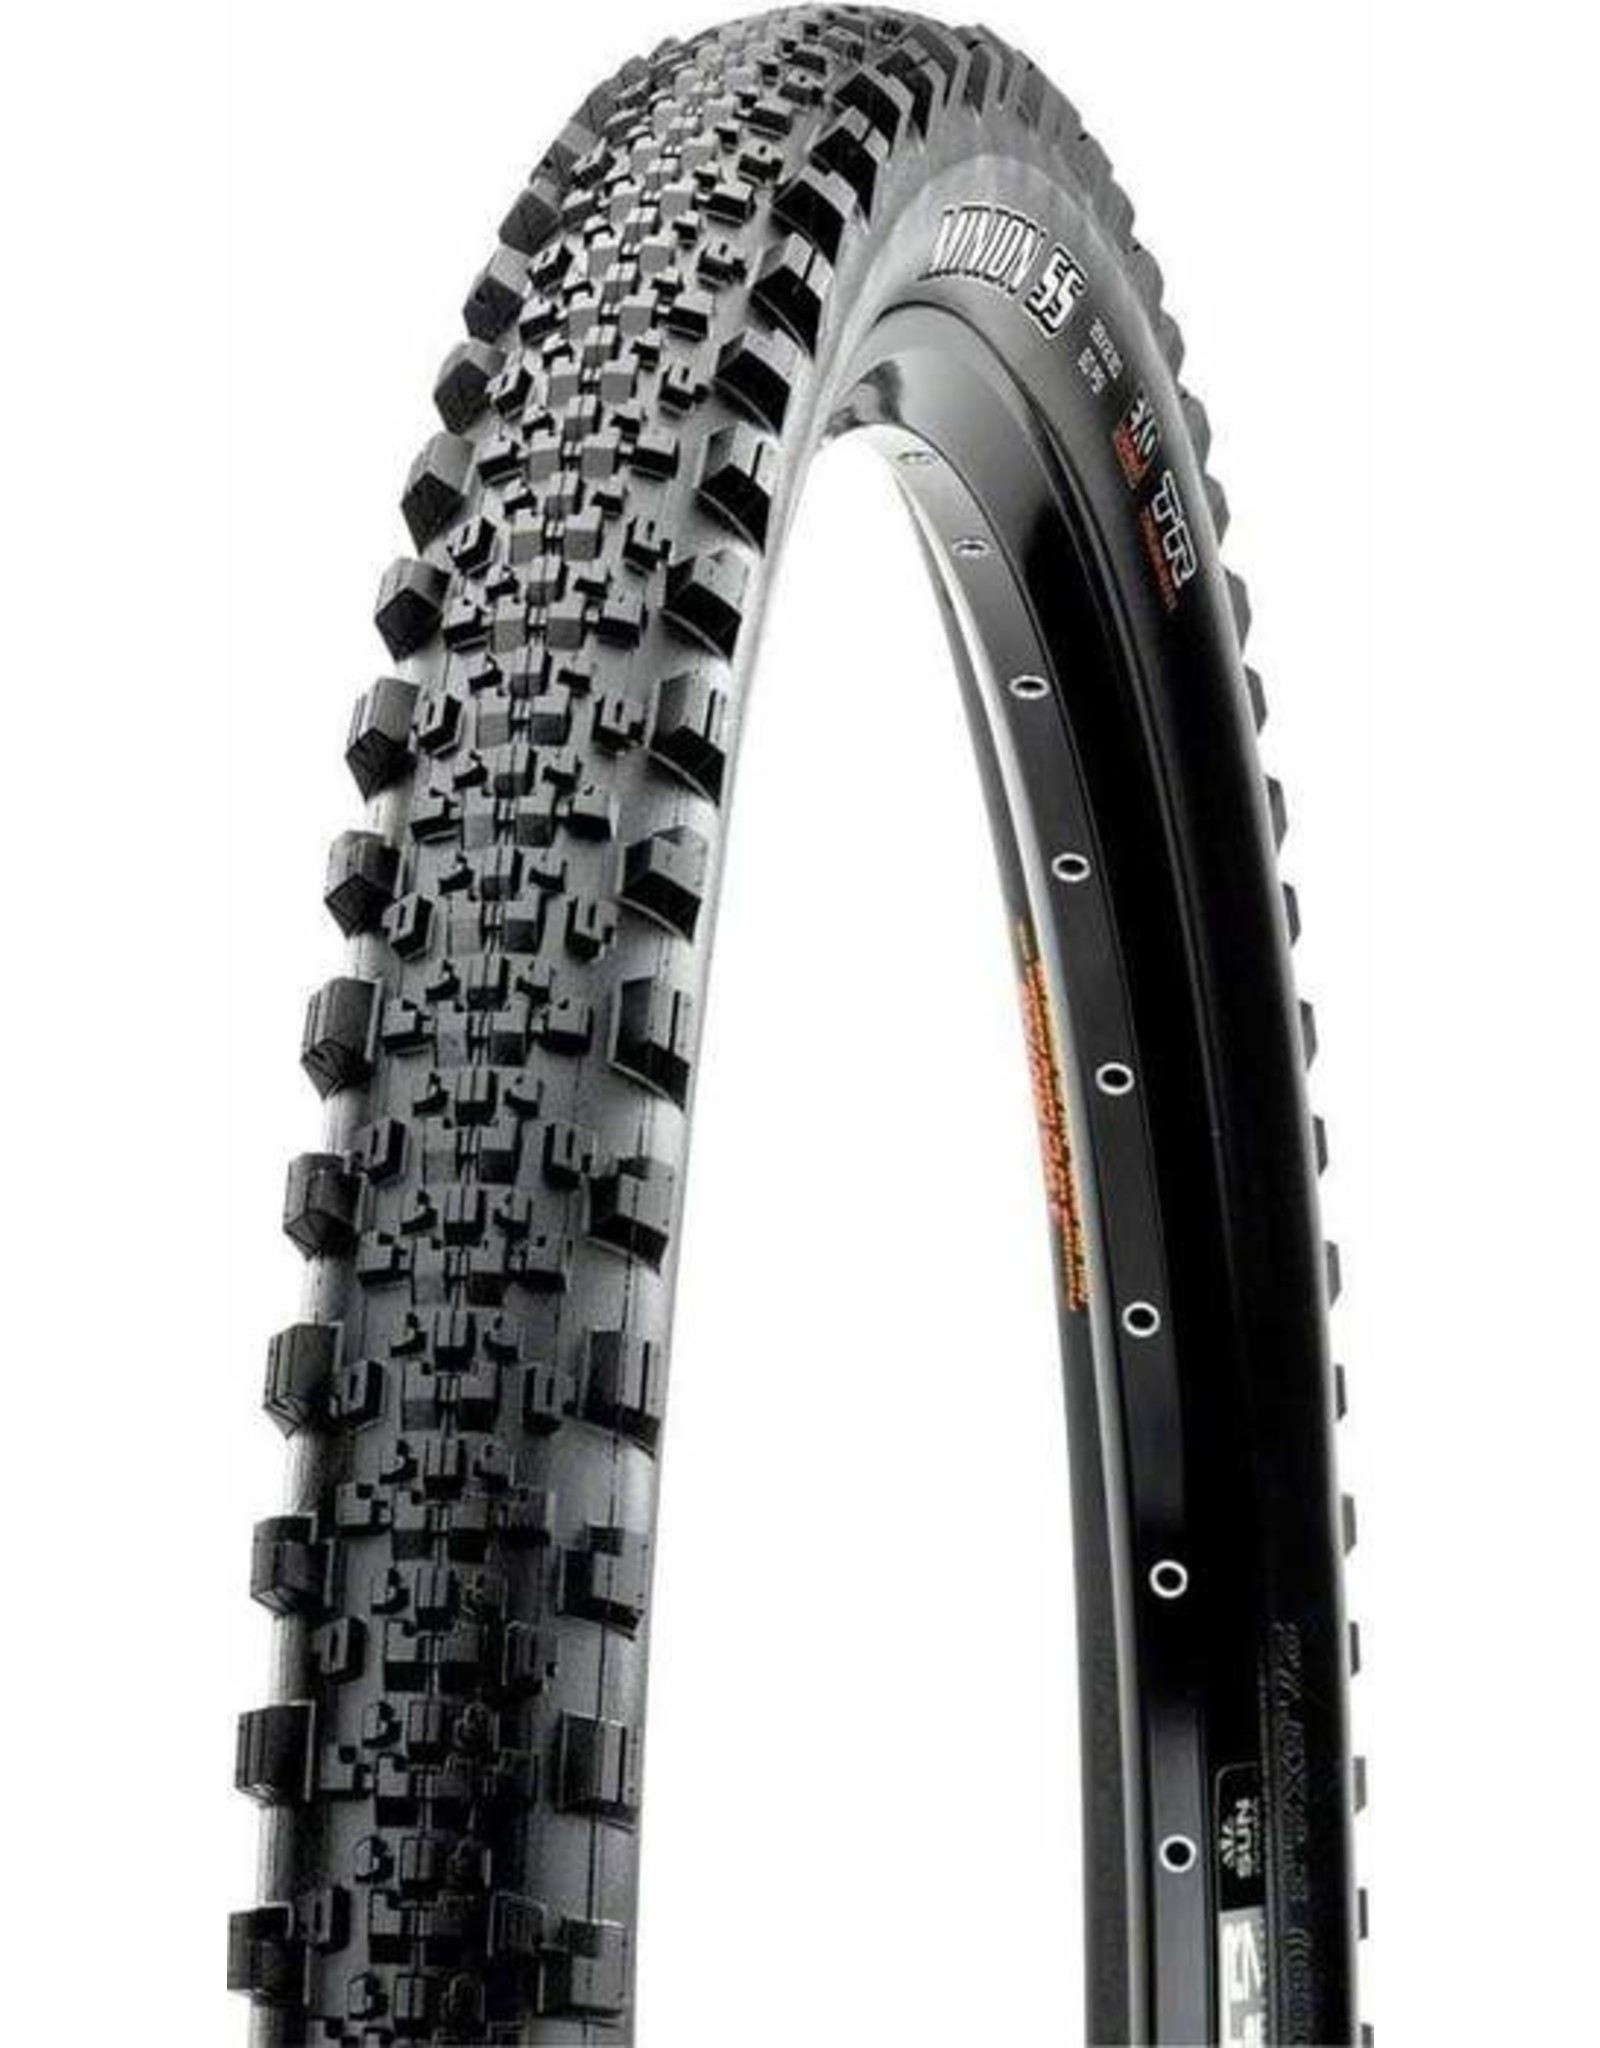 Maxxis Maxxis Minion SS Tire - 27.5 x 2.5, Tubeless, Folding, Black, 3C MaxxGrip, DH, Wide Trail